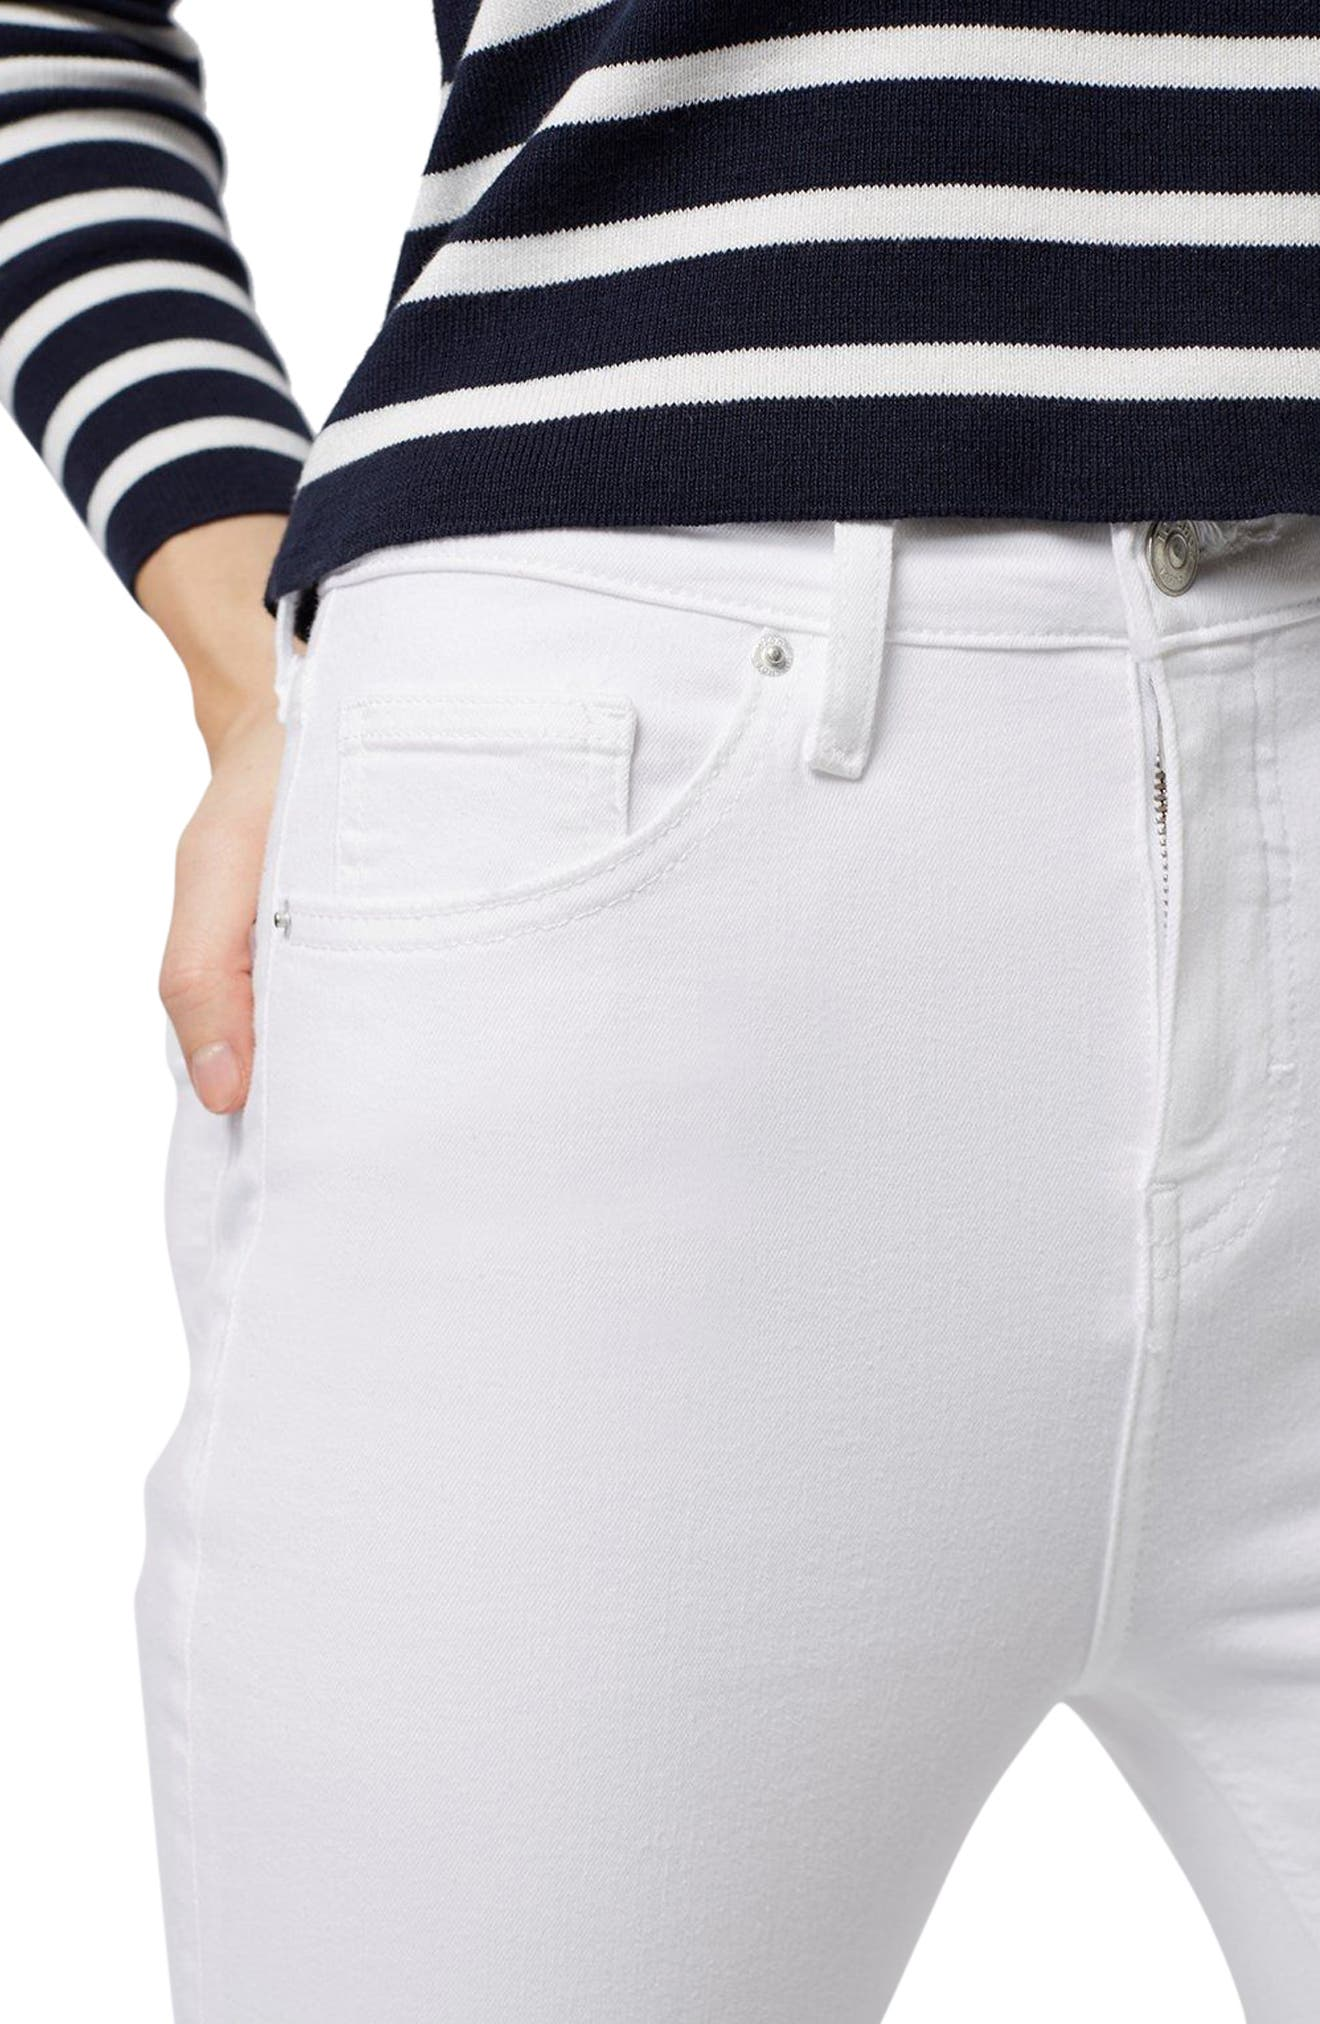 Moto Jamie Jeans,                             Alternate thumbnail 3, color,                             WHITE